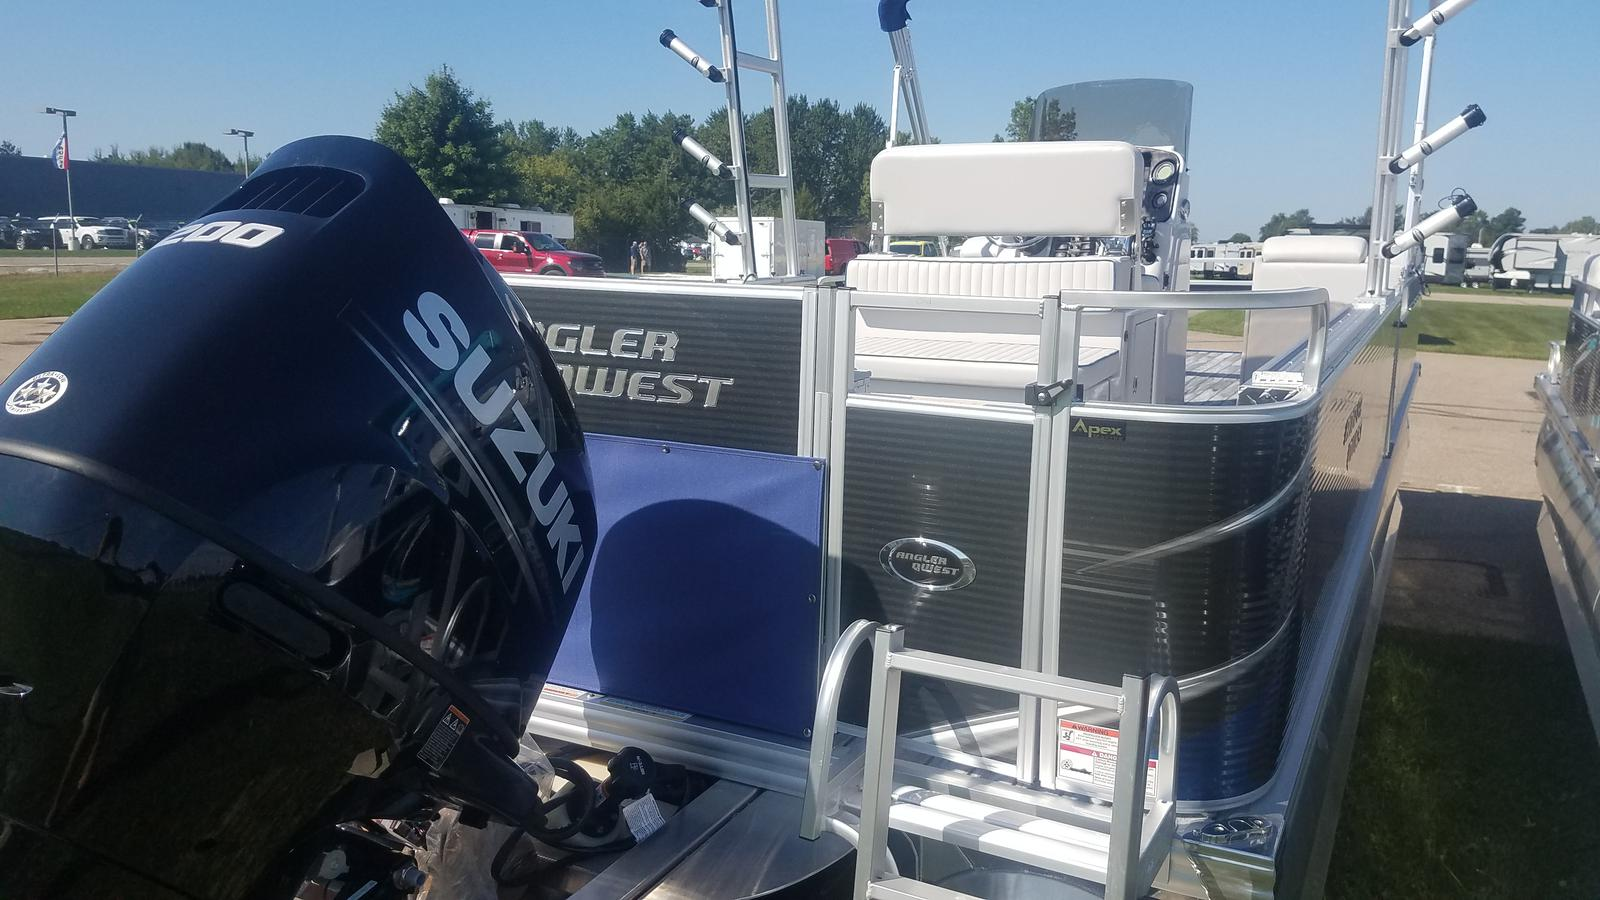 2019 ANGLER QWEST 824 PRO TROLL DLX